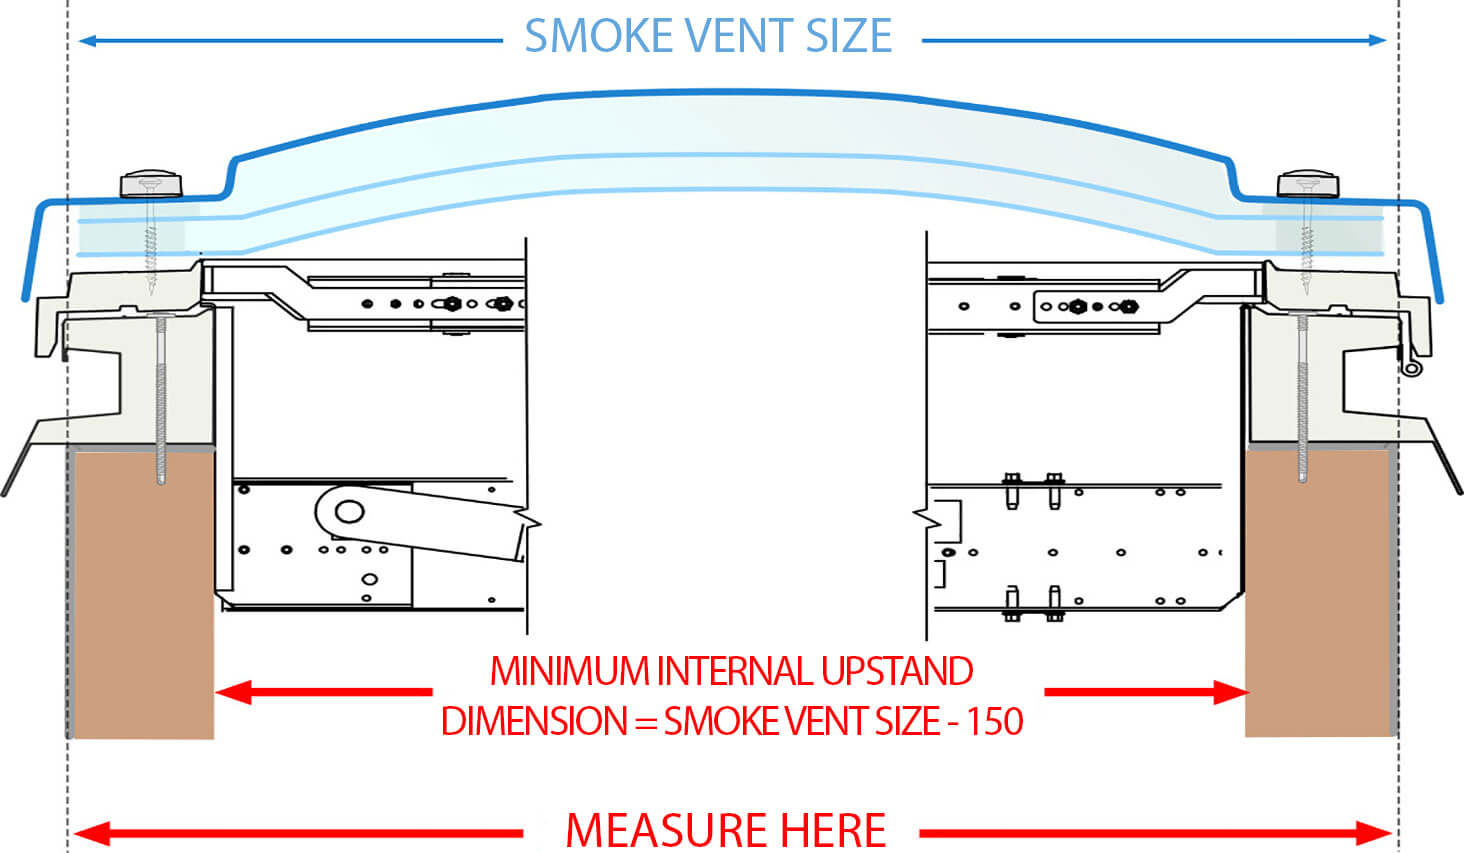 Smoke Vent DF-Kerb drawing